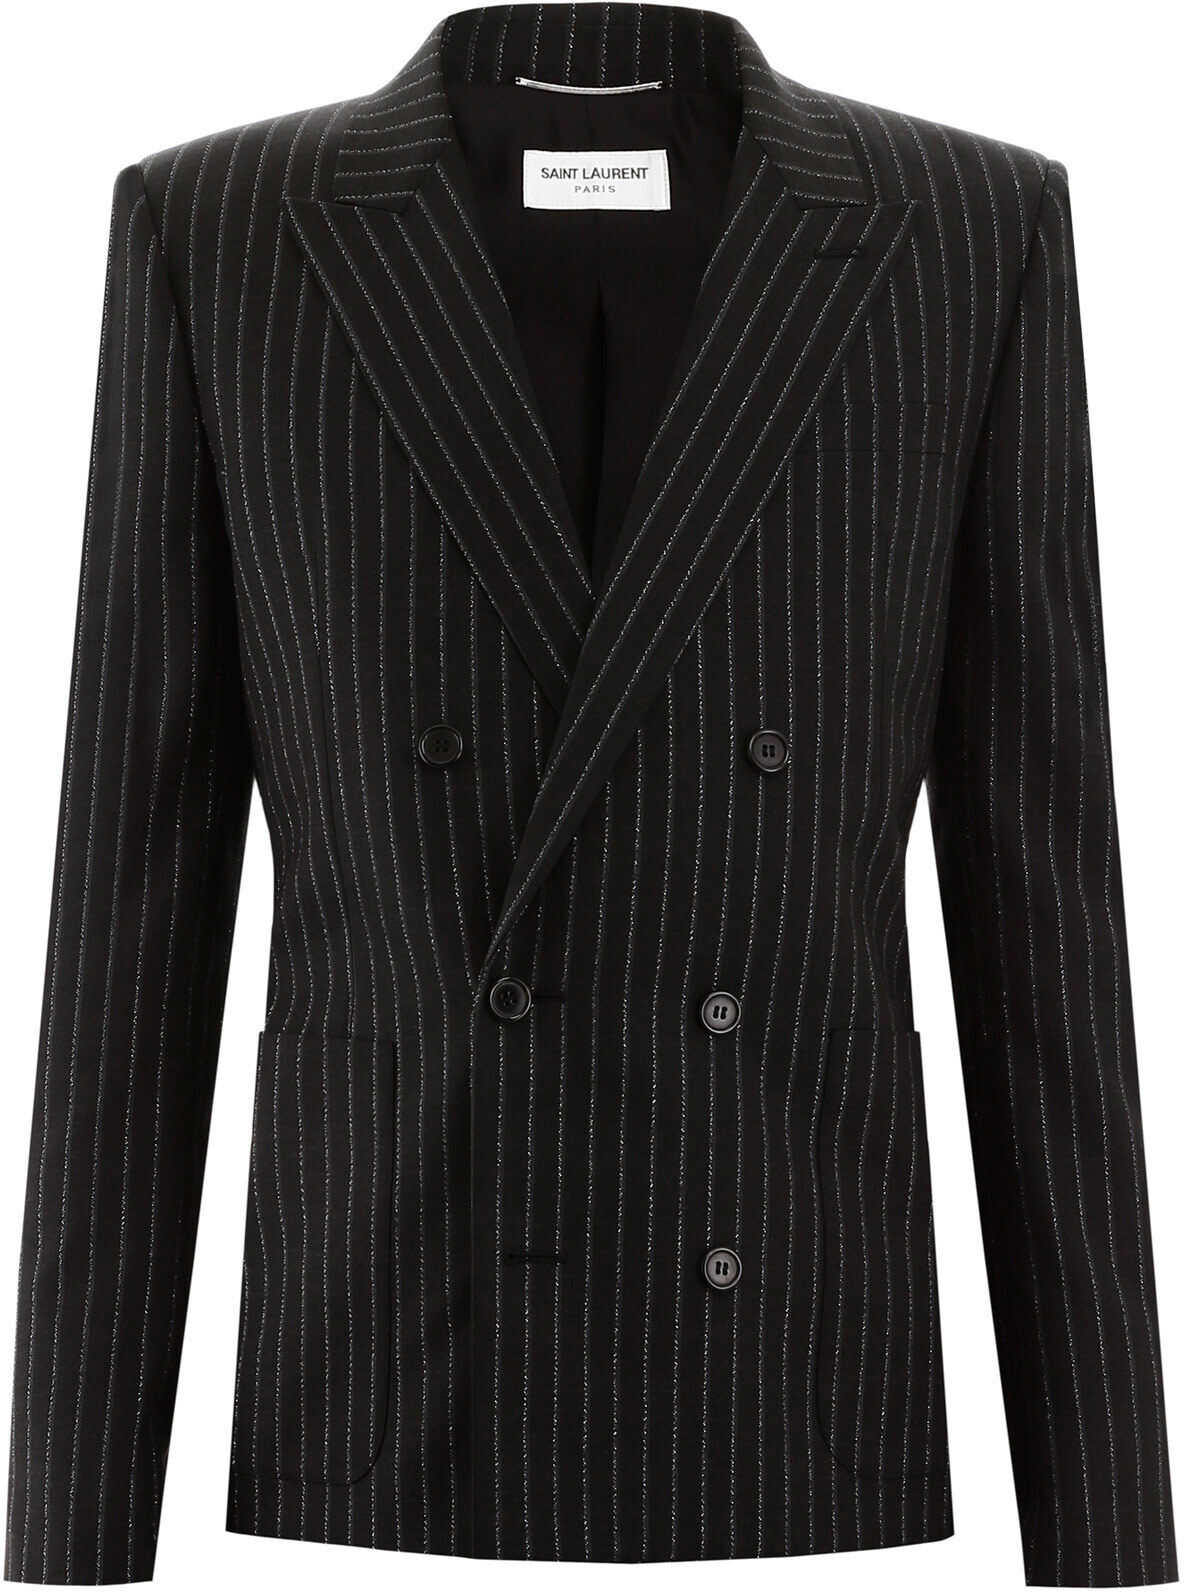 Saint Laurent Pinstripe Blazer NOIR ARGENT imagine